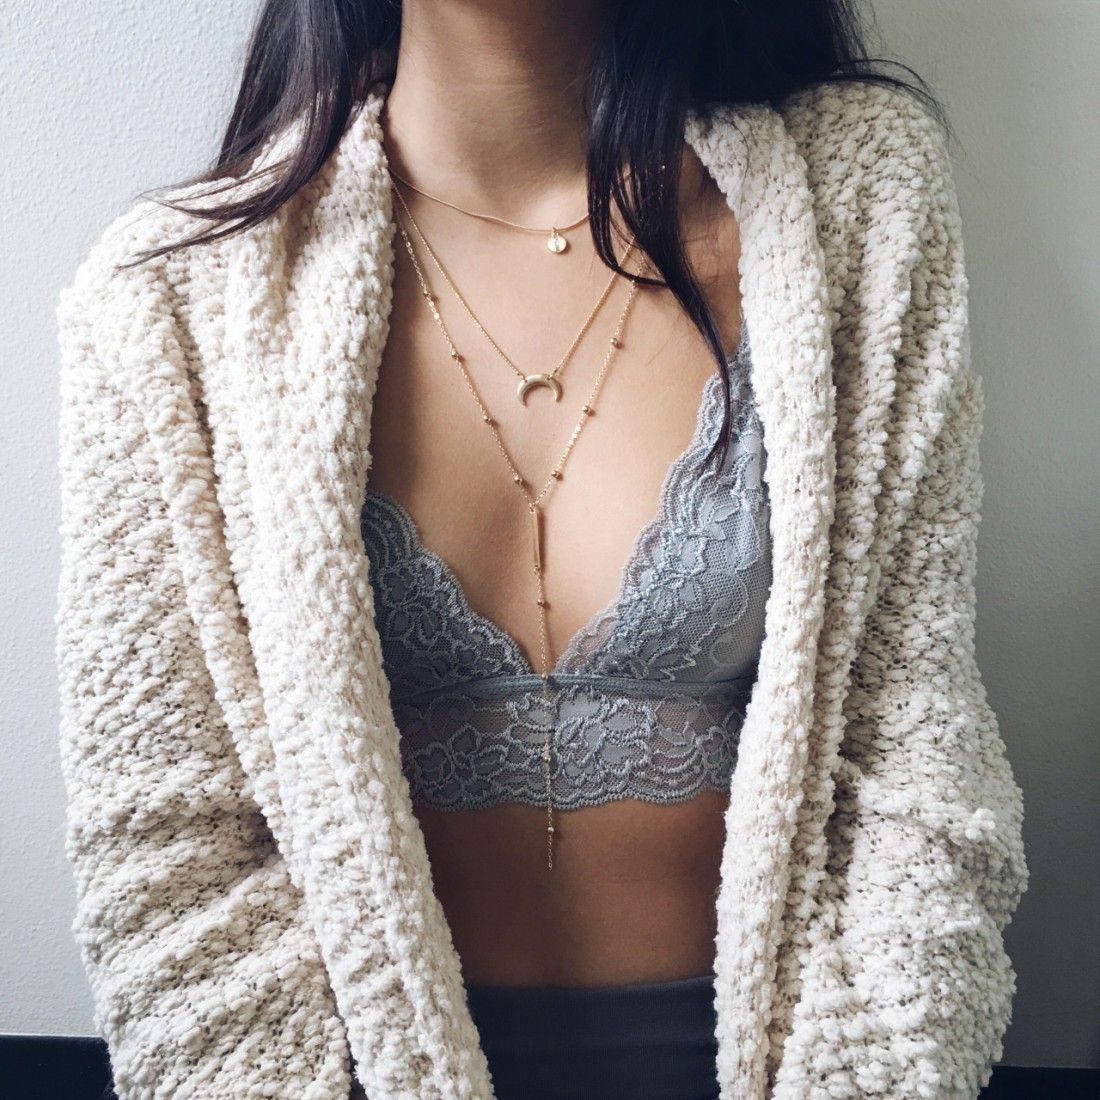 10 Reasons Why Bralettes Are Bae